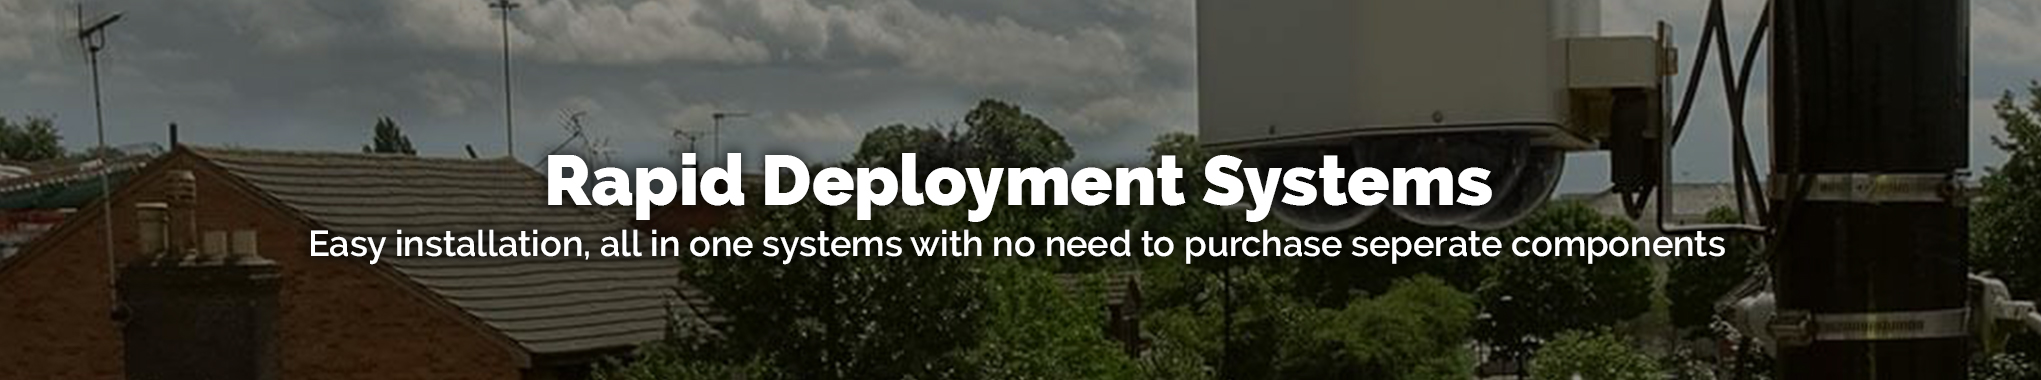 Rapid Deployment Systems